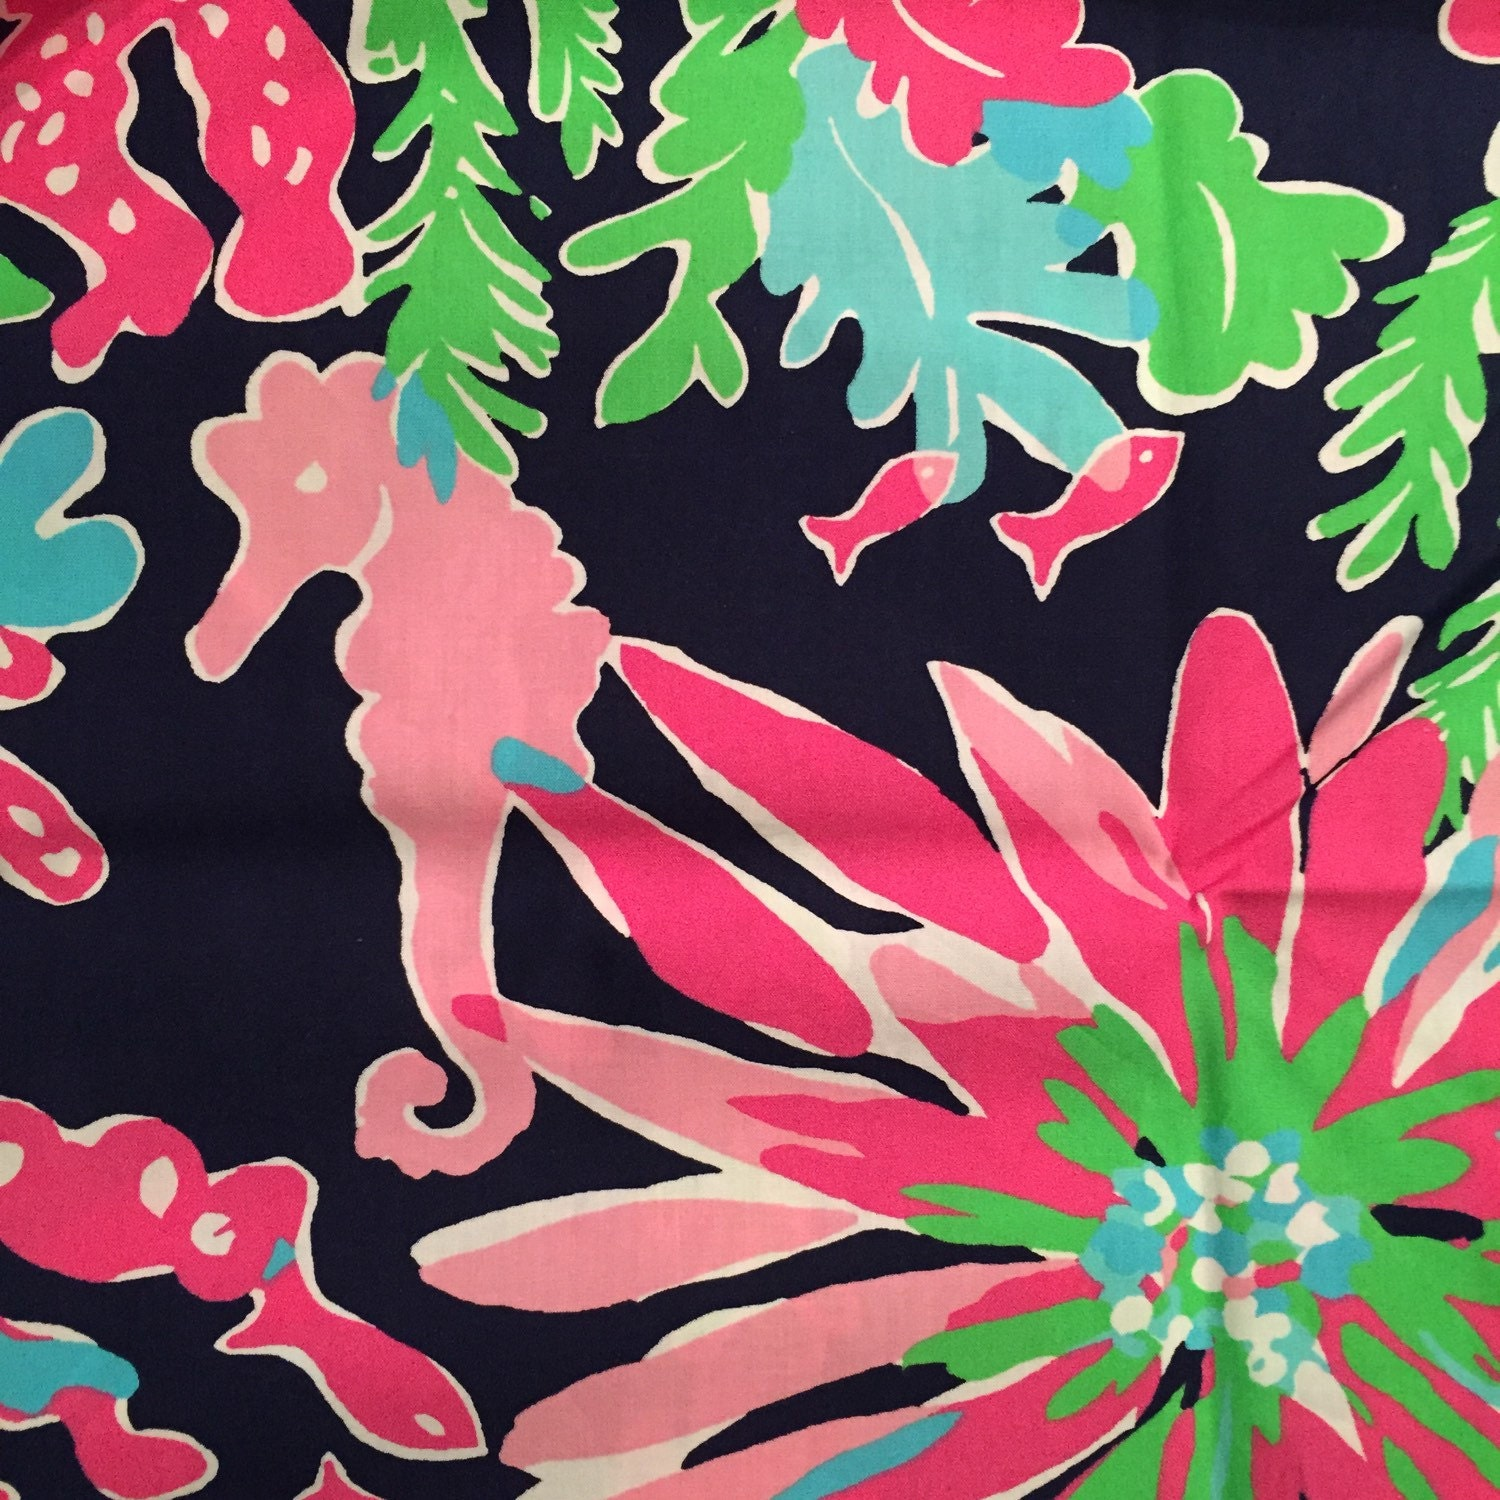 Lilly Pulitzer Fabric 3 Square Patches Of Lilly Pulitzer Fabric In Sippin N Trippin